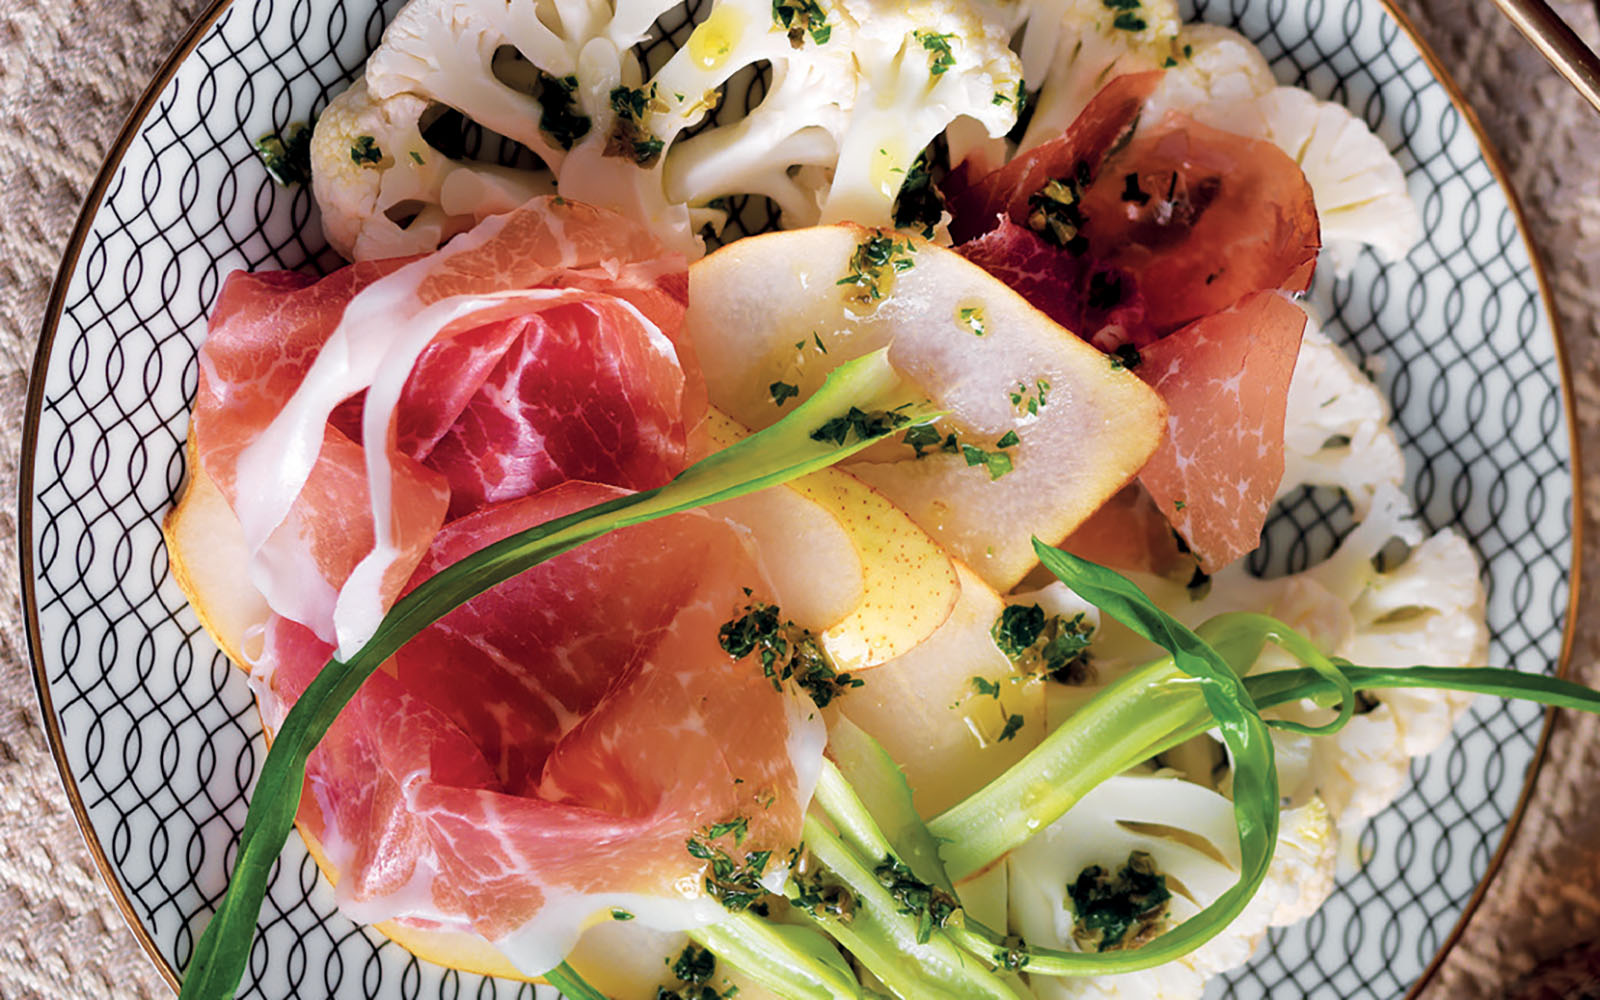 Carpaccio recipe of cauliflower, chicory and culatello